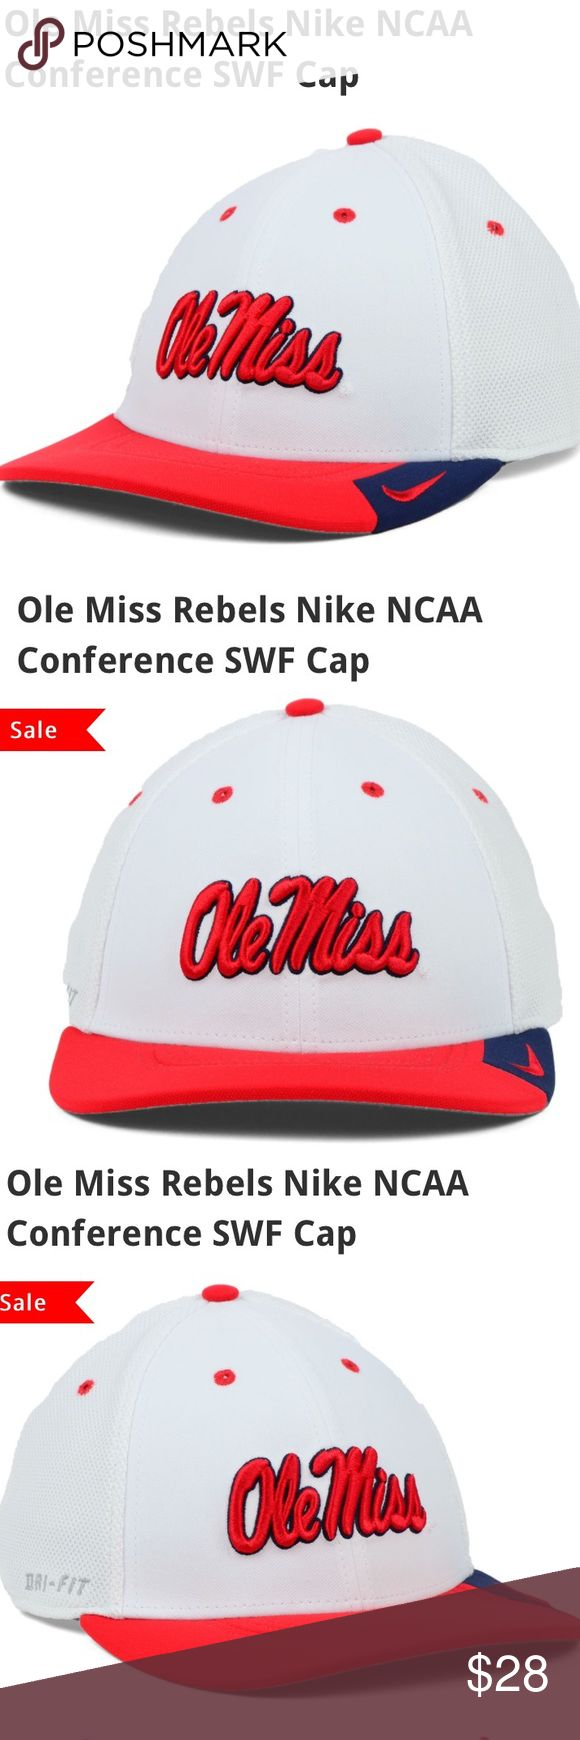 🆕 Nike Ole Miss Rebels NCAA Conference Hat NWT L Brand new with tags! Thank you for looking! Nike Accessories Hats